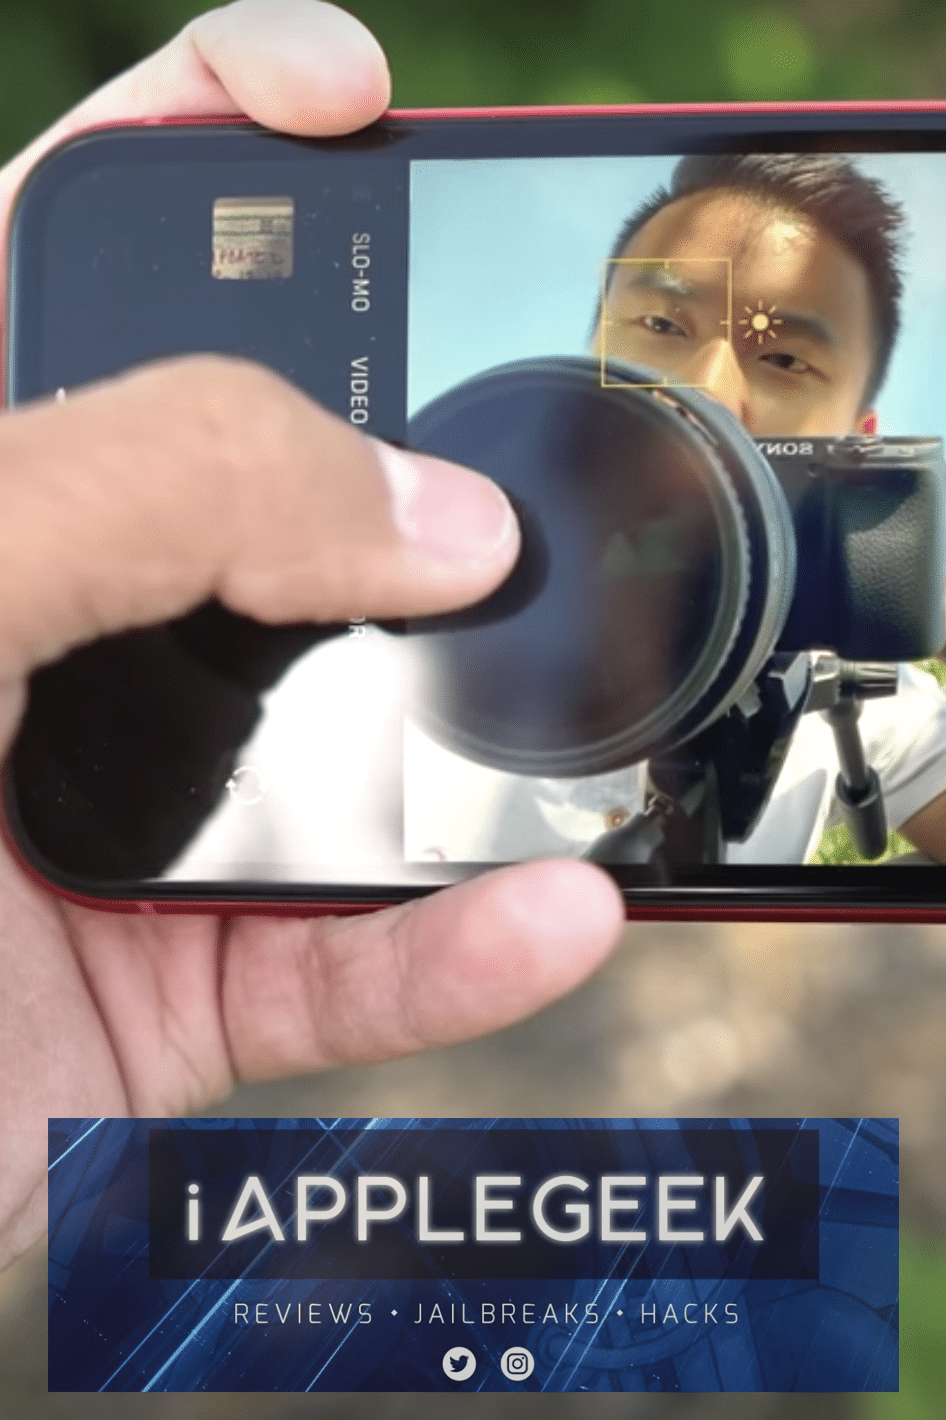 Tech-Selfie of a young man taking a picture of himself using the iPhone 11